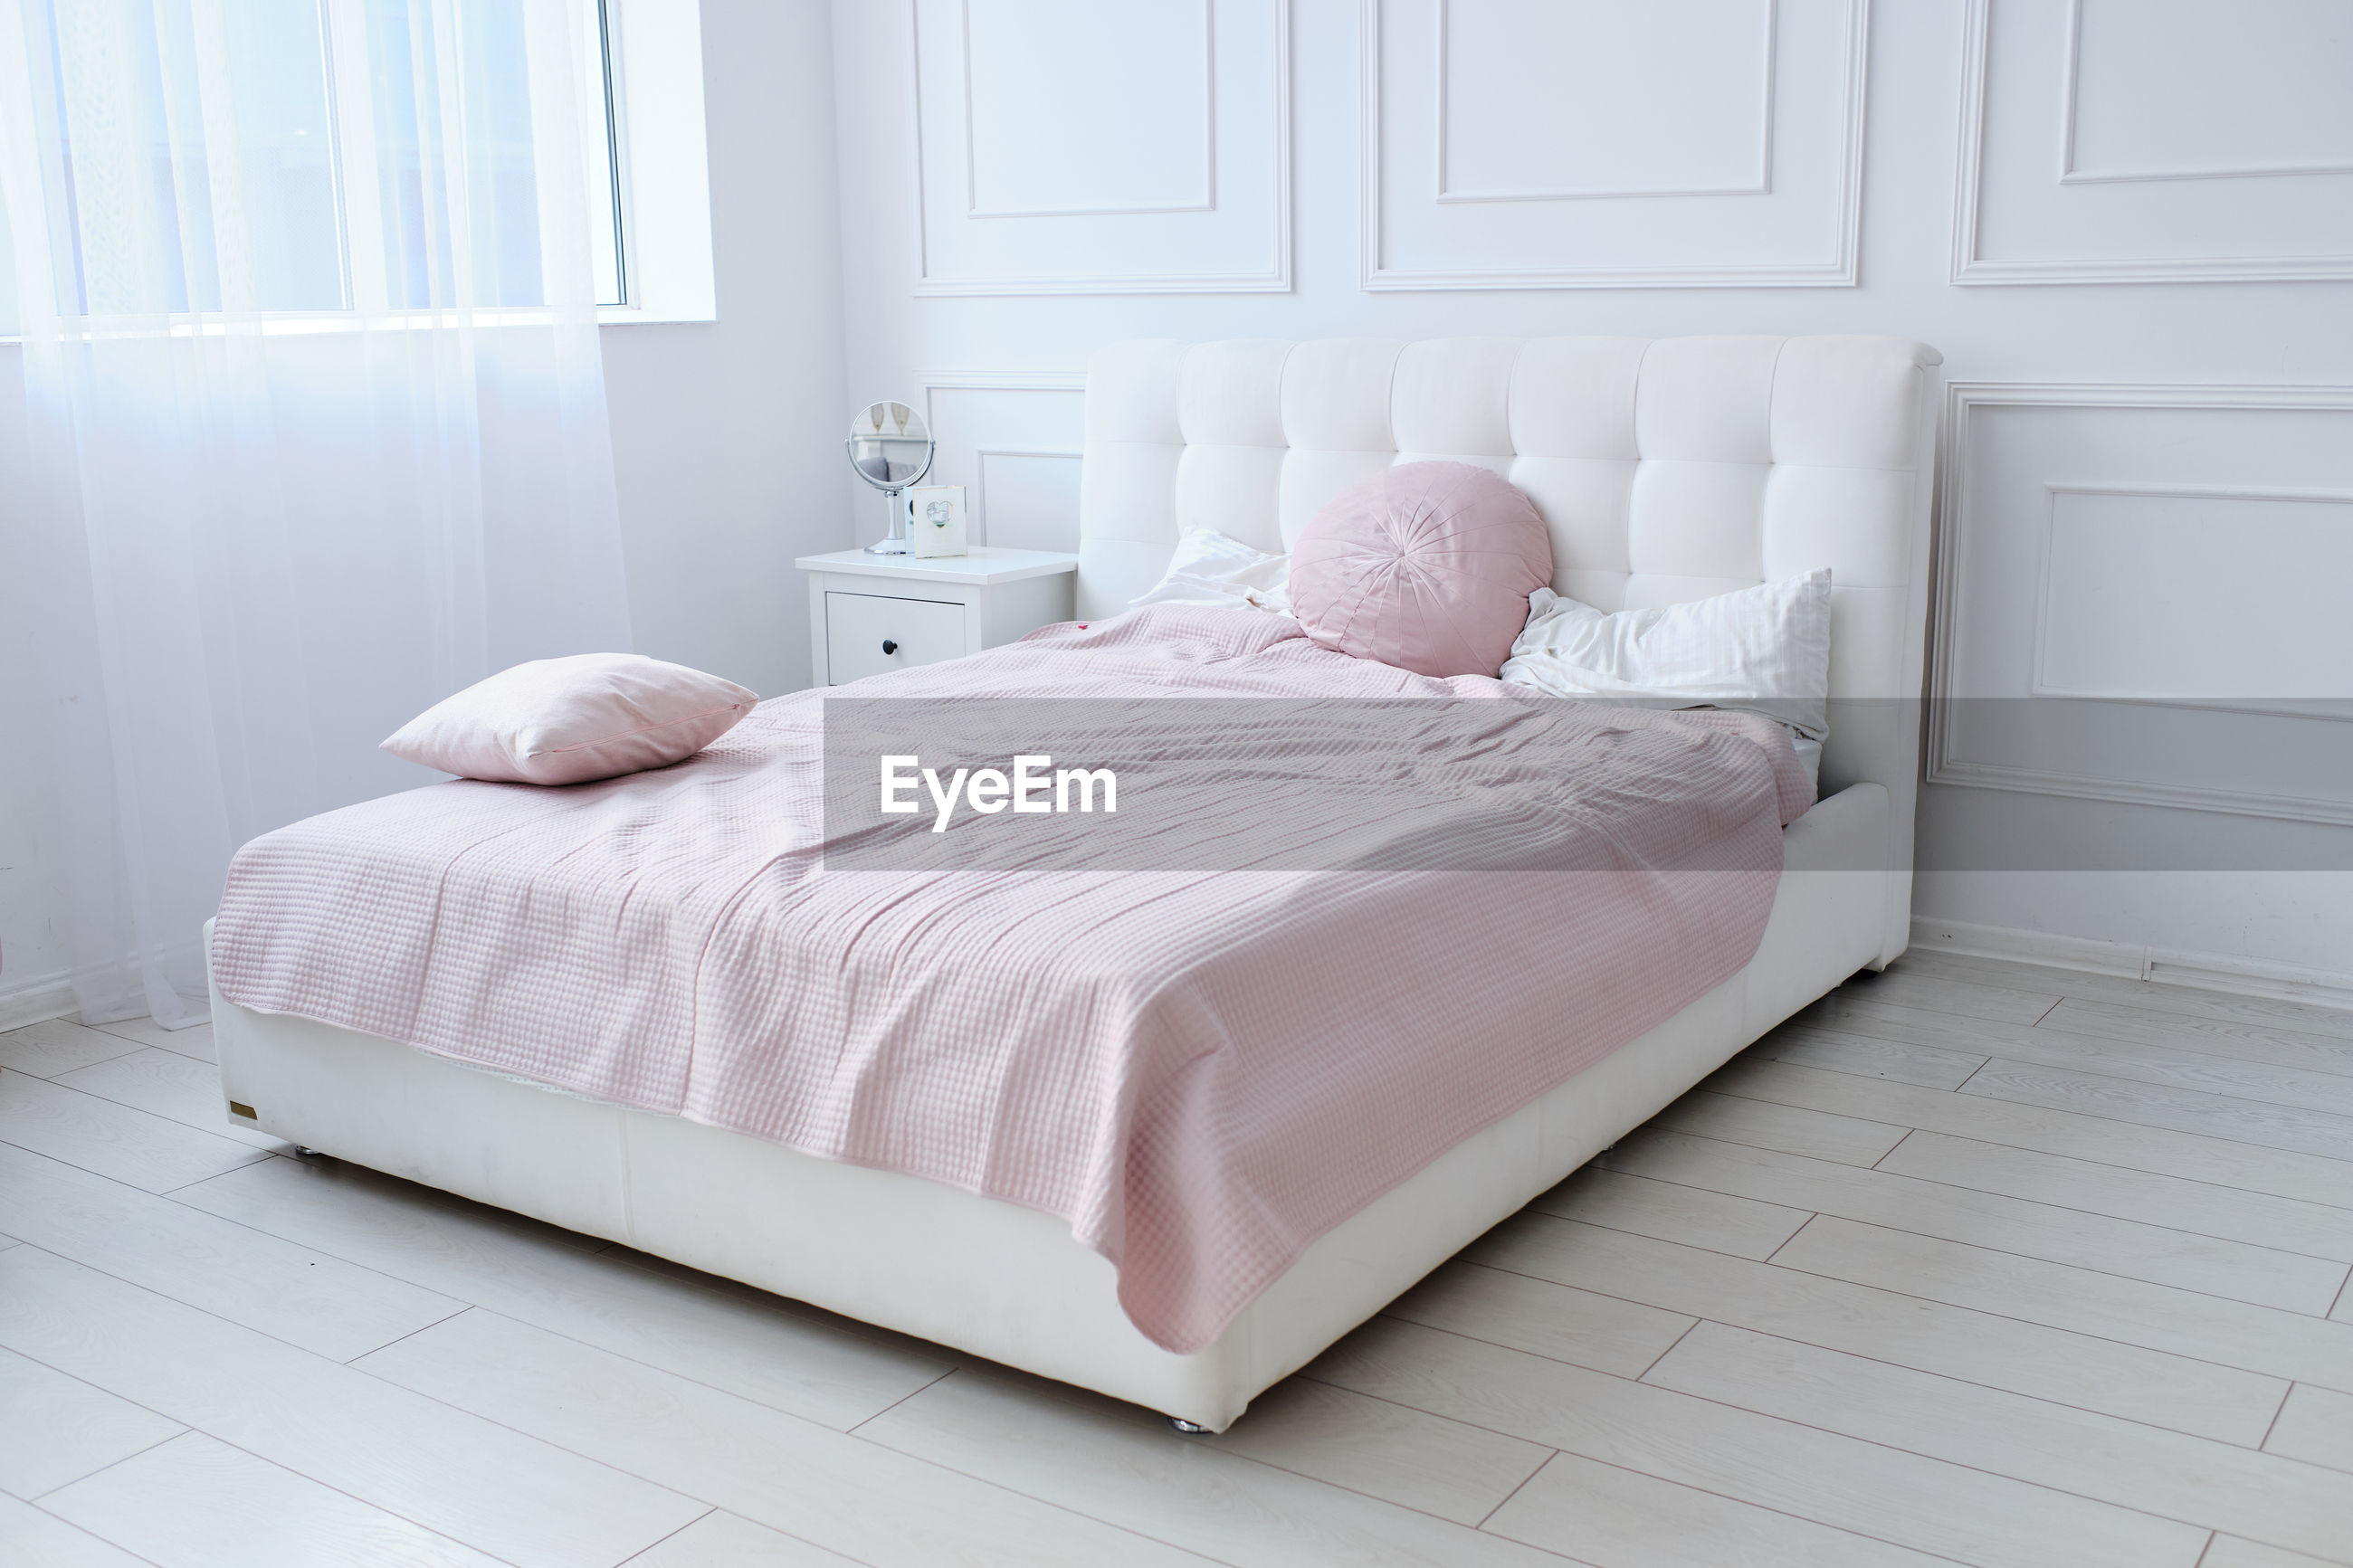 BED IN BEDROOM